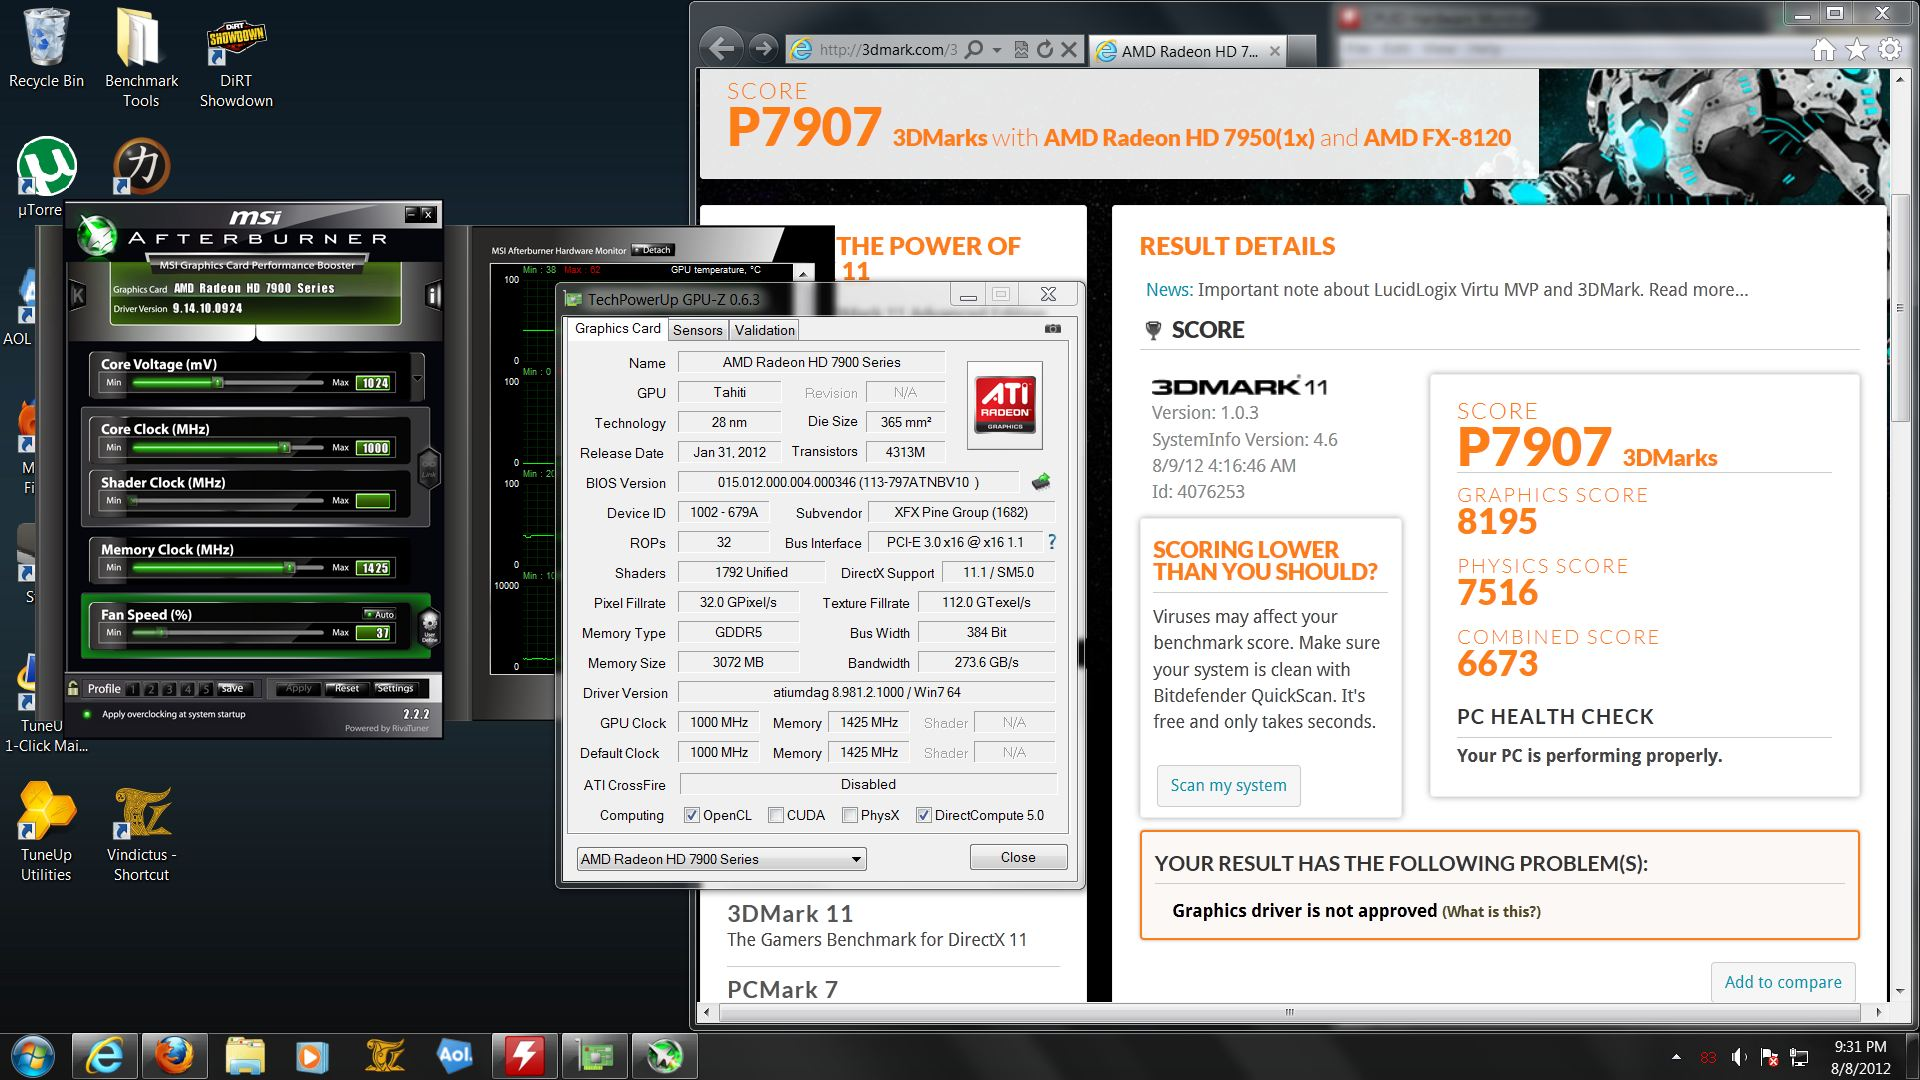 Official] AMD Radeon HD 7950/7970/7990 Owners Thread - Page